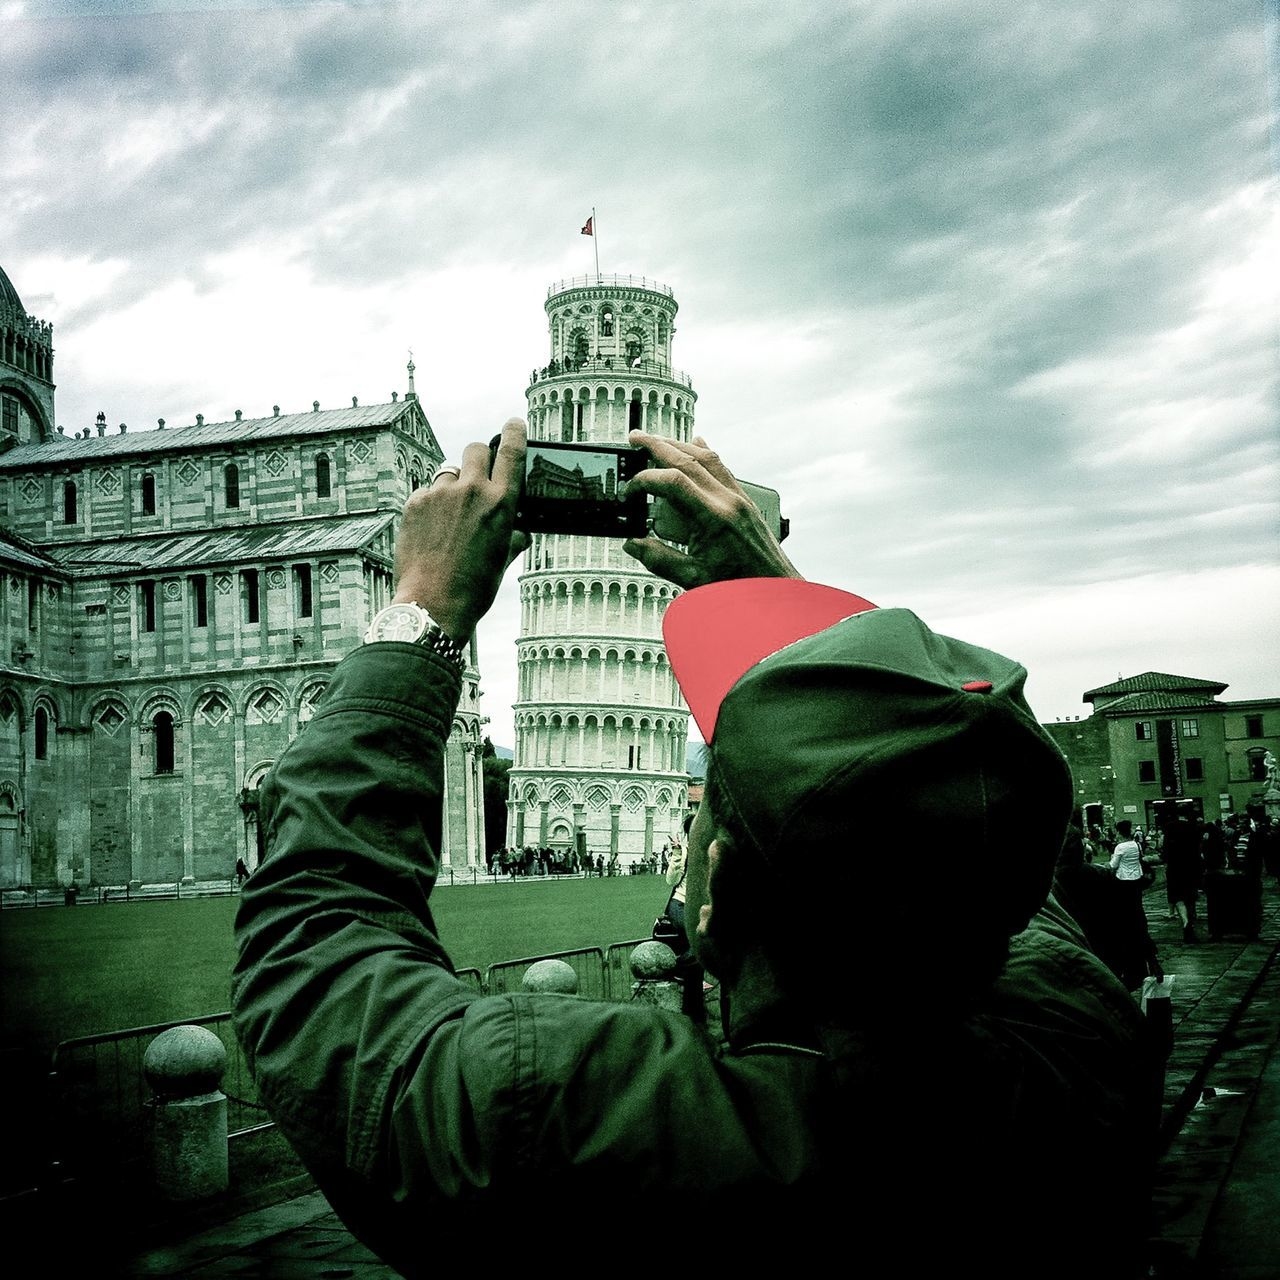 Taking Photos Seeing The Sights Tower Of Pisa Schief Schiefer Check This Out EyeEm Italy The Tourist